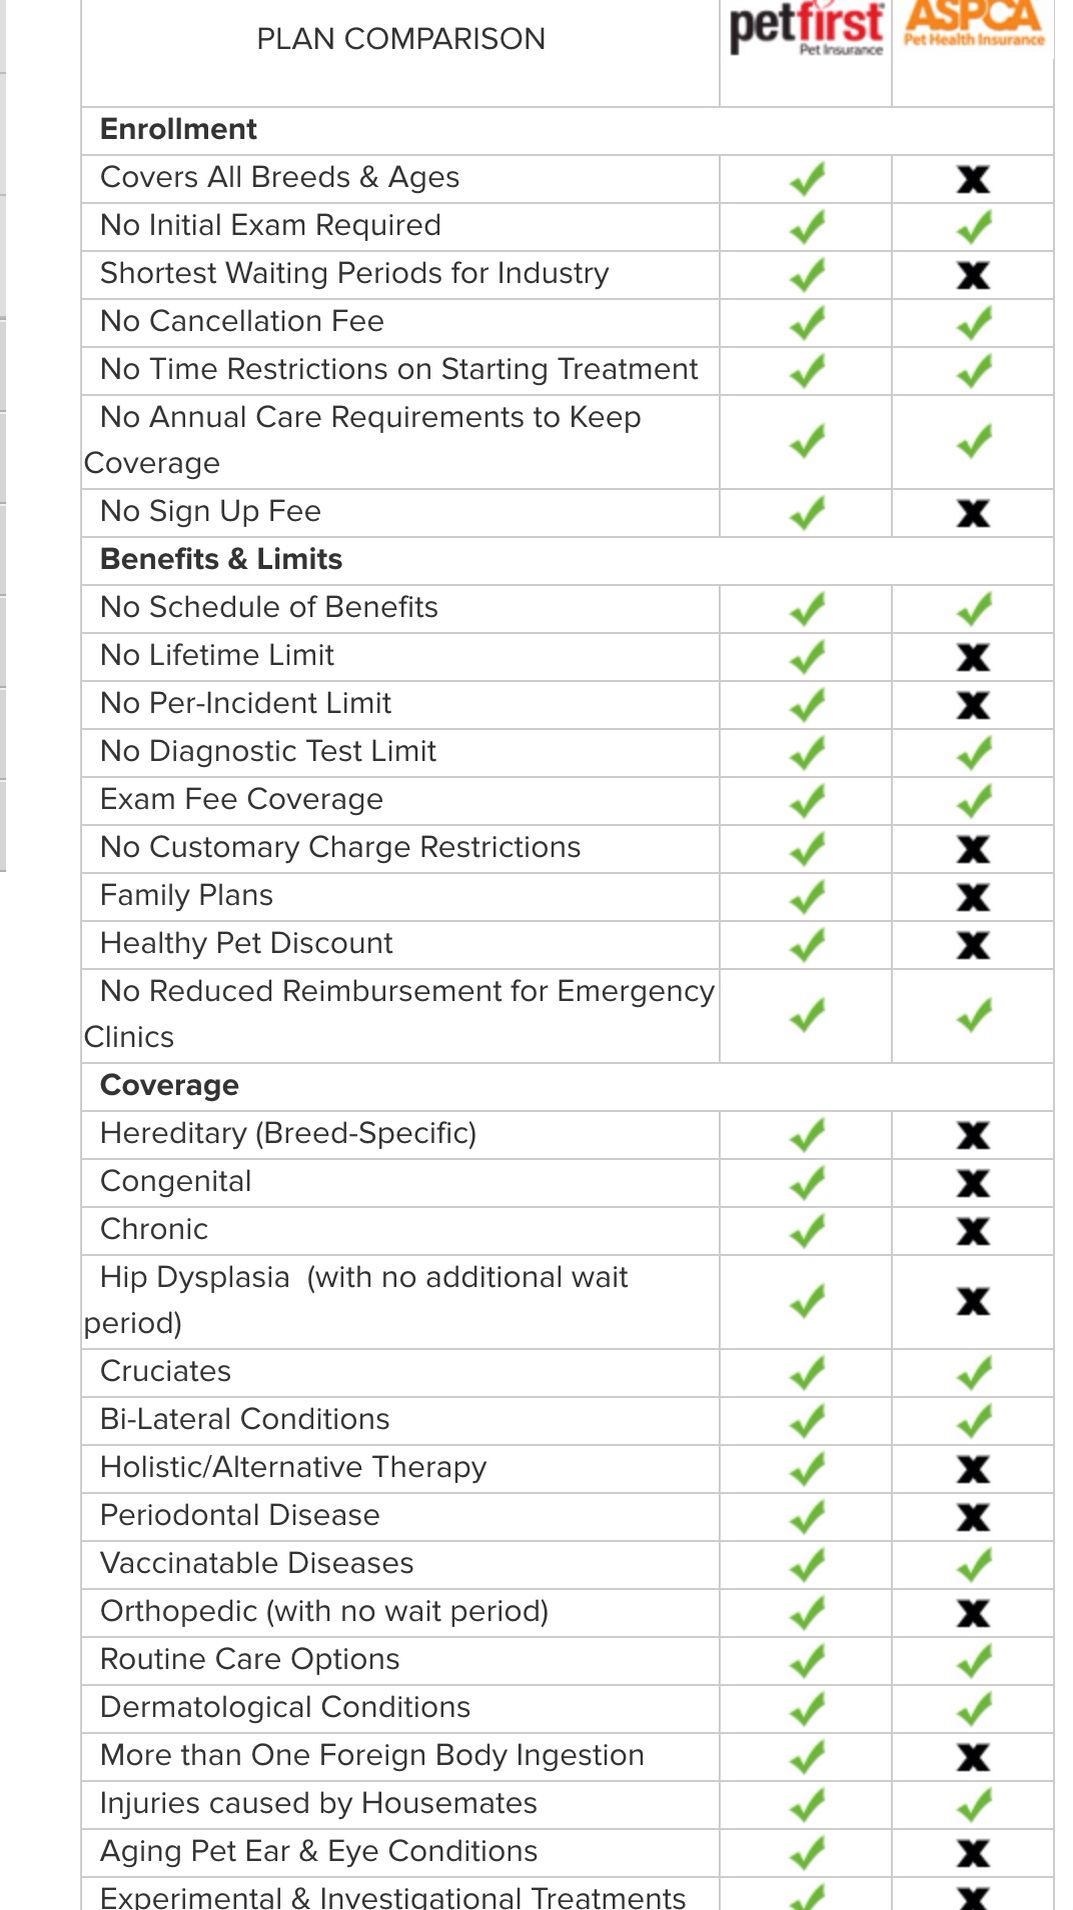 Petfirst Vs Aspca Insurance Plans Pet Insurance Reviews Pet Health Insurance Pet Insurance